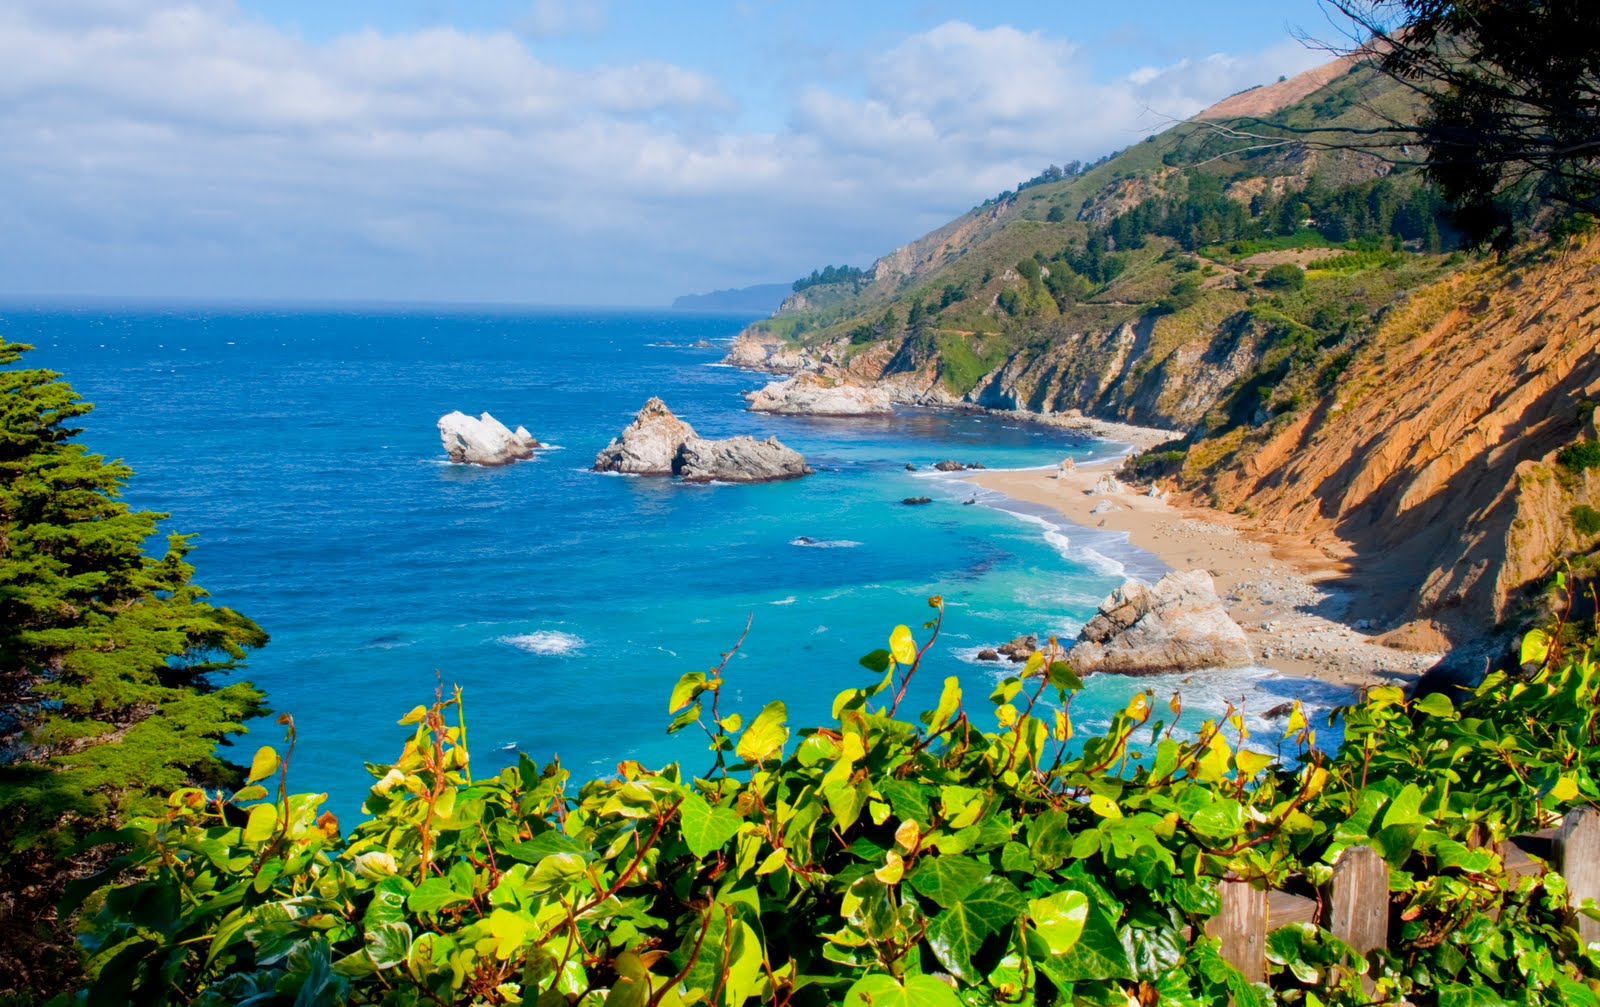 1000+ images about California Coastline on Pinterest